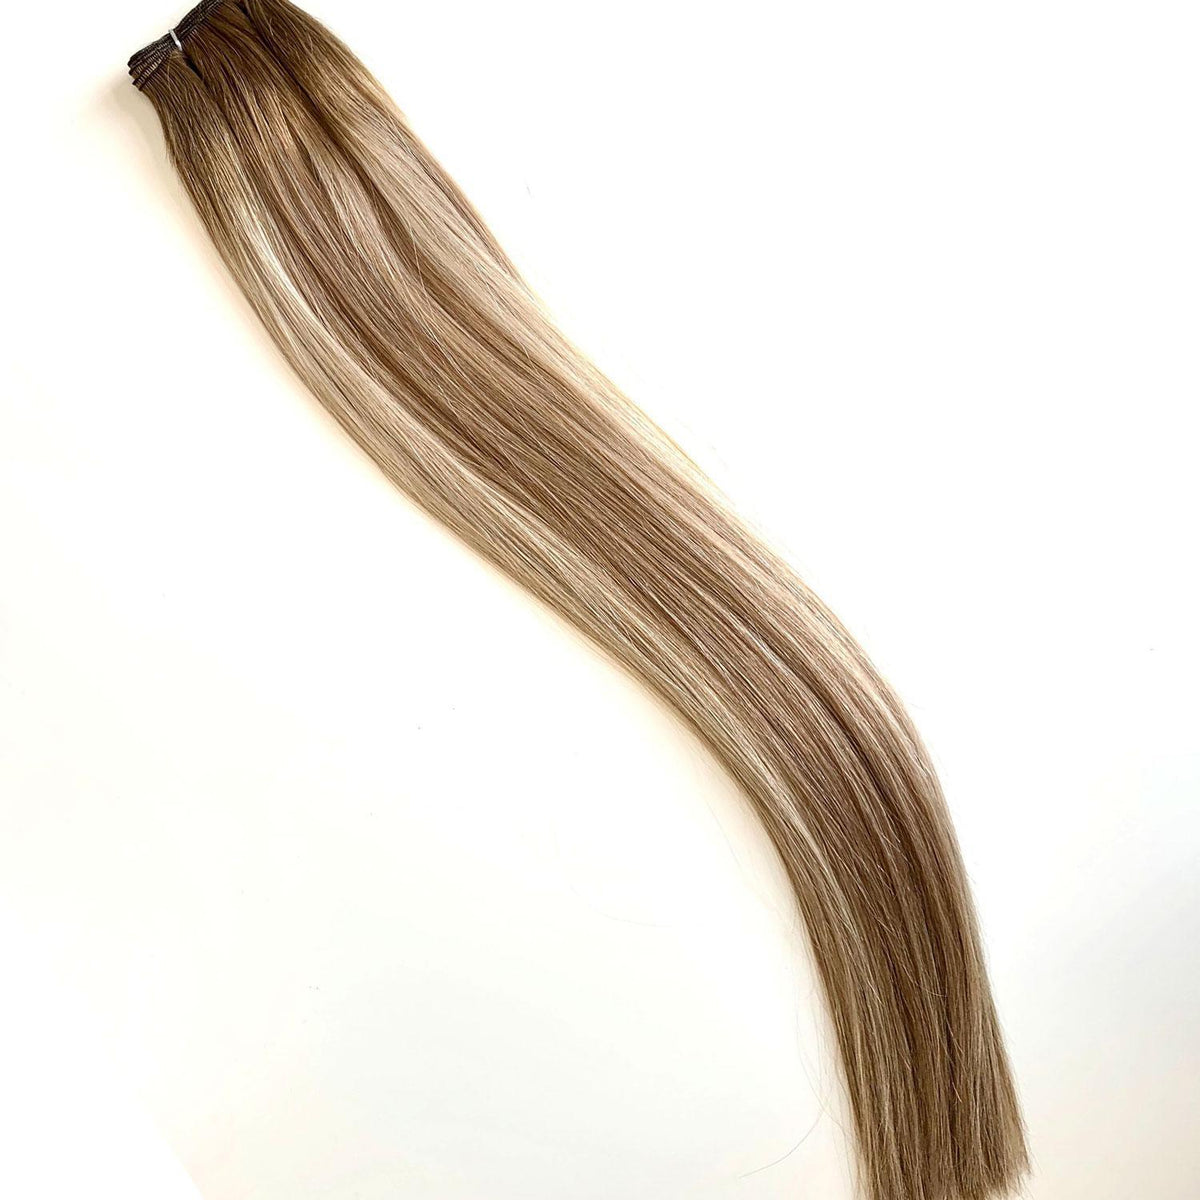 Laced Hair Machine Sewn Weft Extensions Rooted #6/D8/60